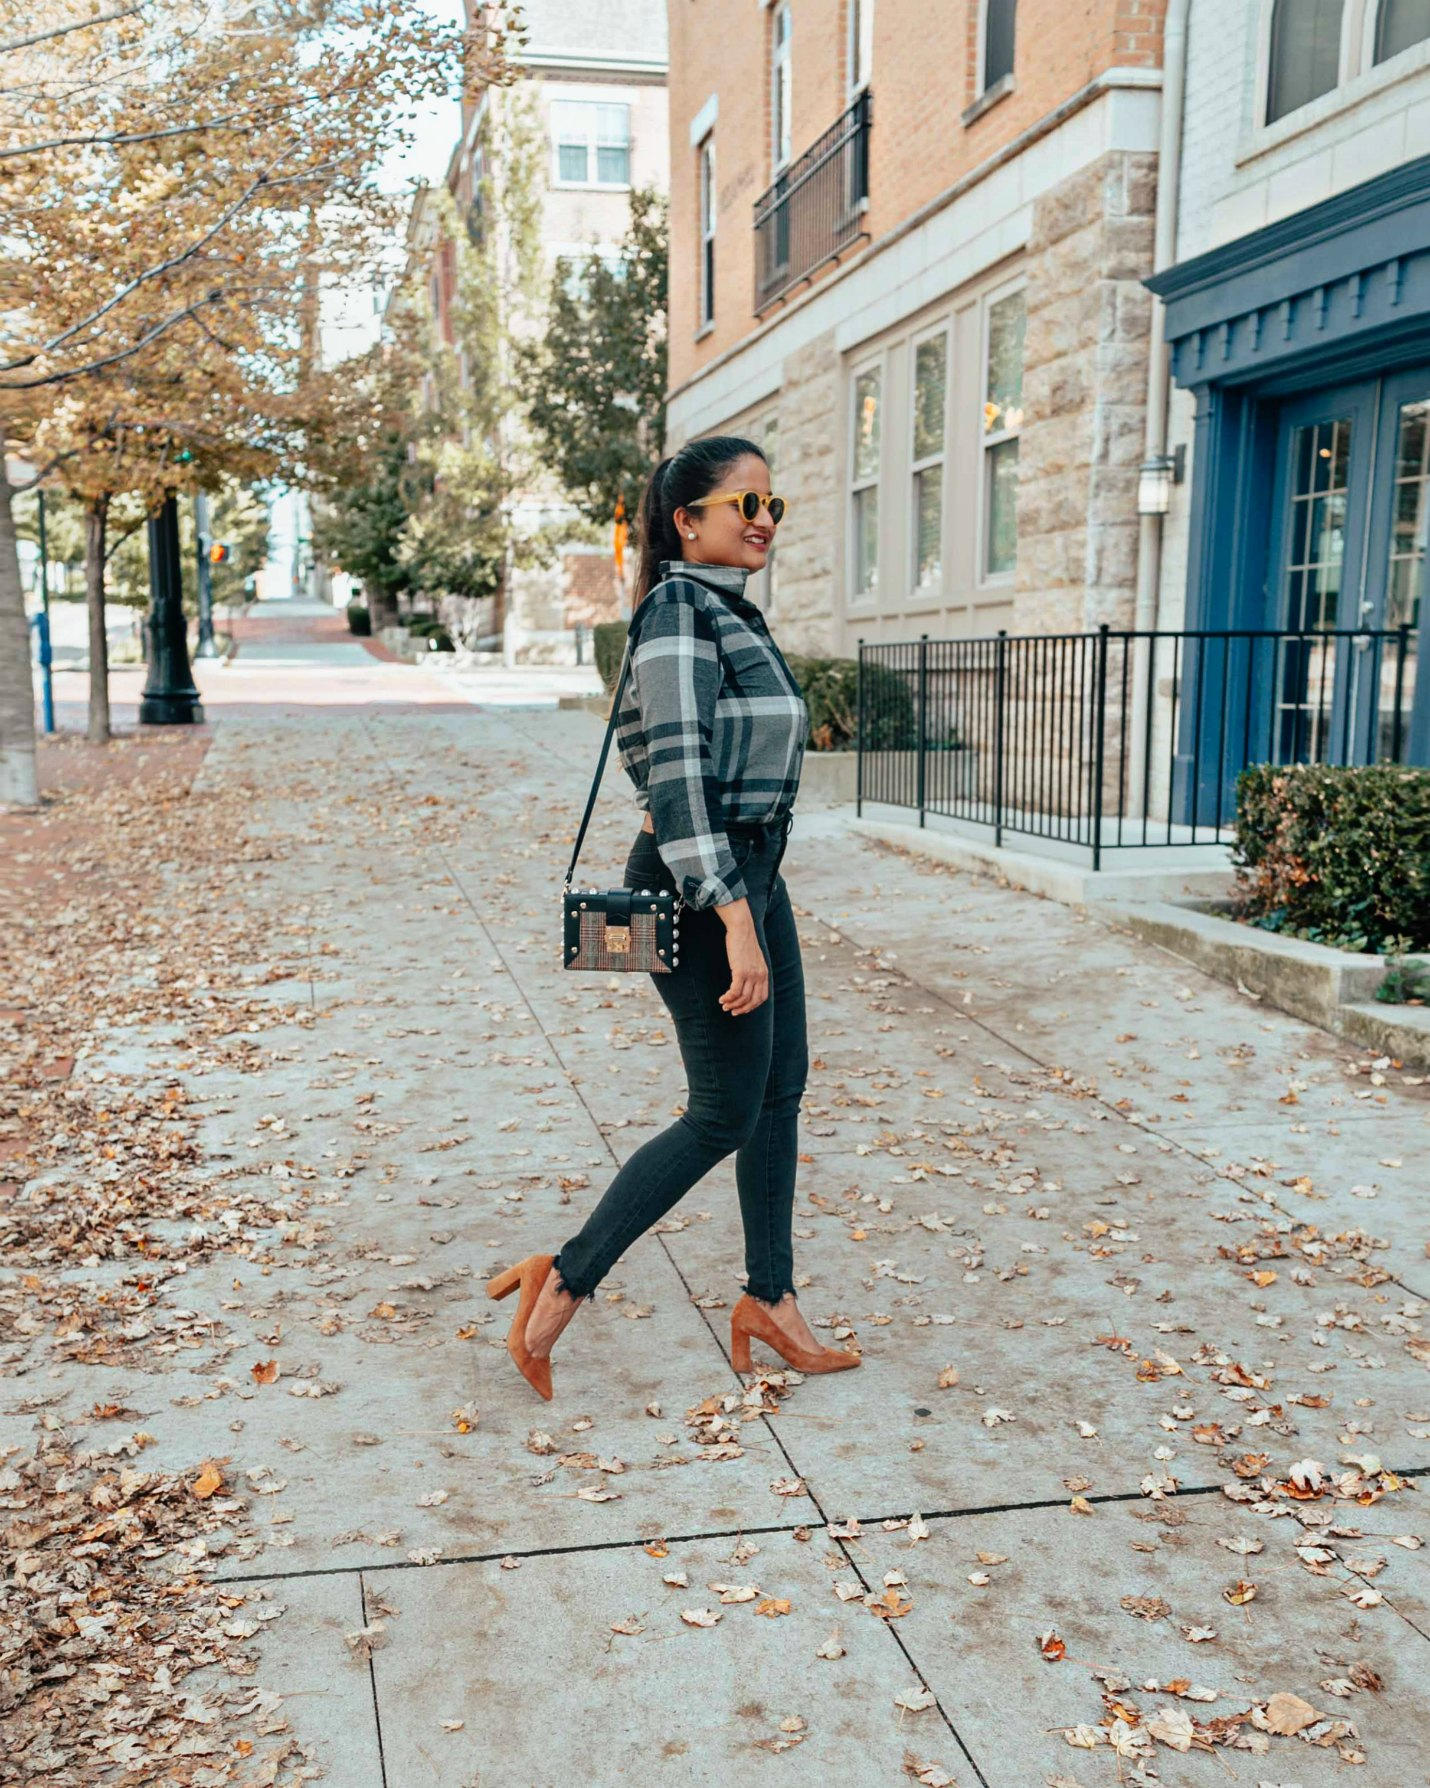 wearing Eddie Bauer Women's Stine's Favorite Flannel Shirt | Eddie Bauer boyfriend flannel shirt styled 4 ways, featured by top Ohio modest fashion blog, Dreaming Loud